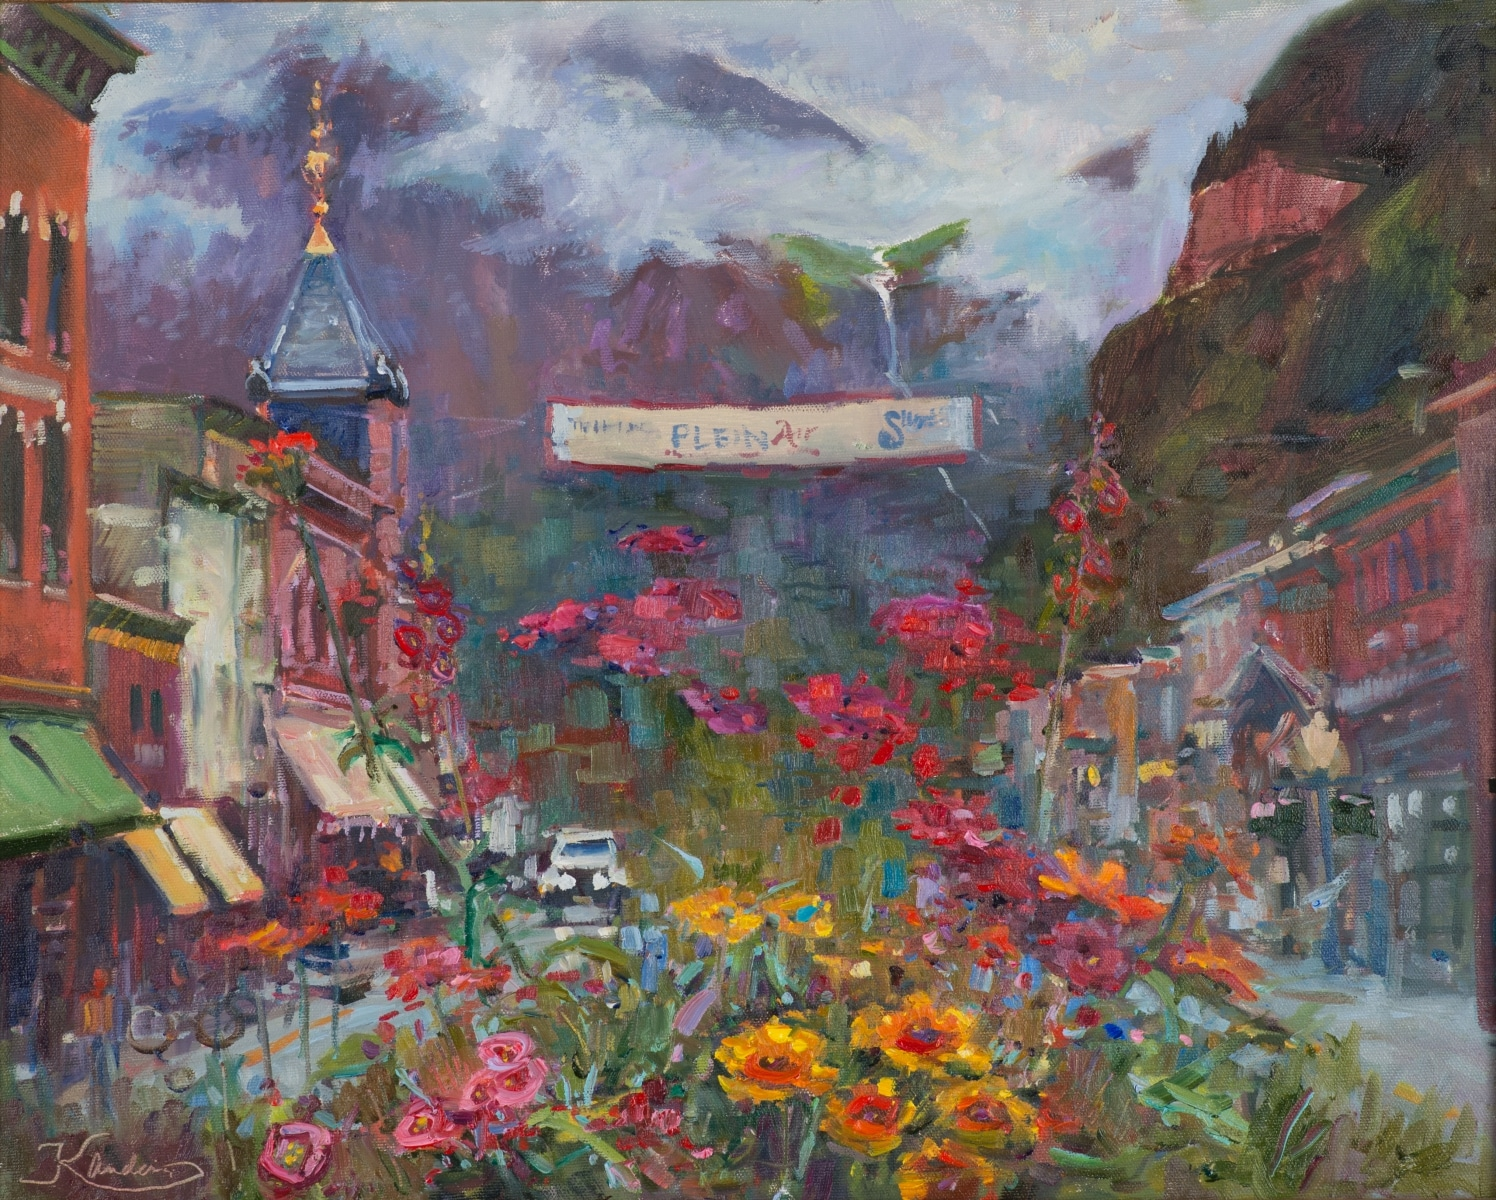 """Image of Kirsten Anderson's """"Chance of Precipitation"""" from the Telluride Plien Air Festival"""